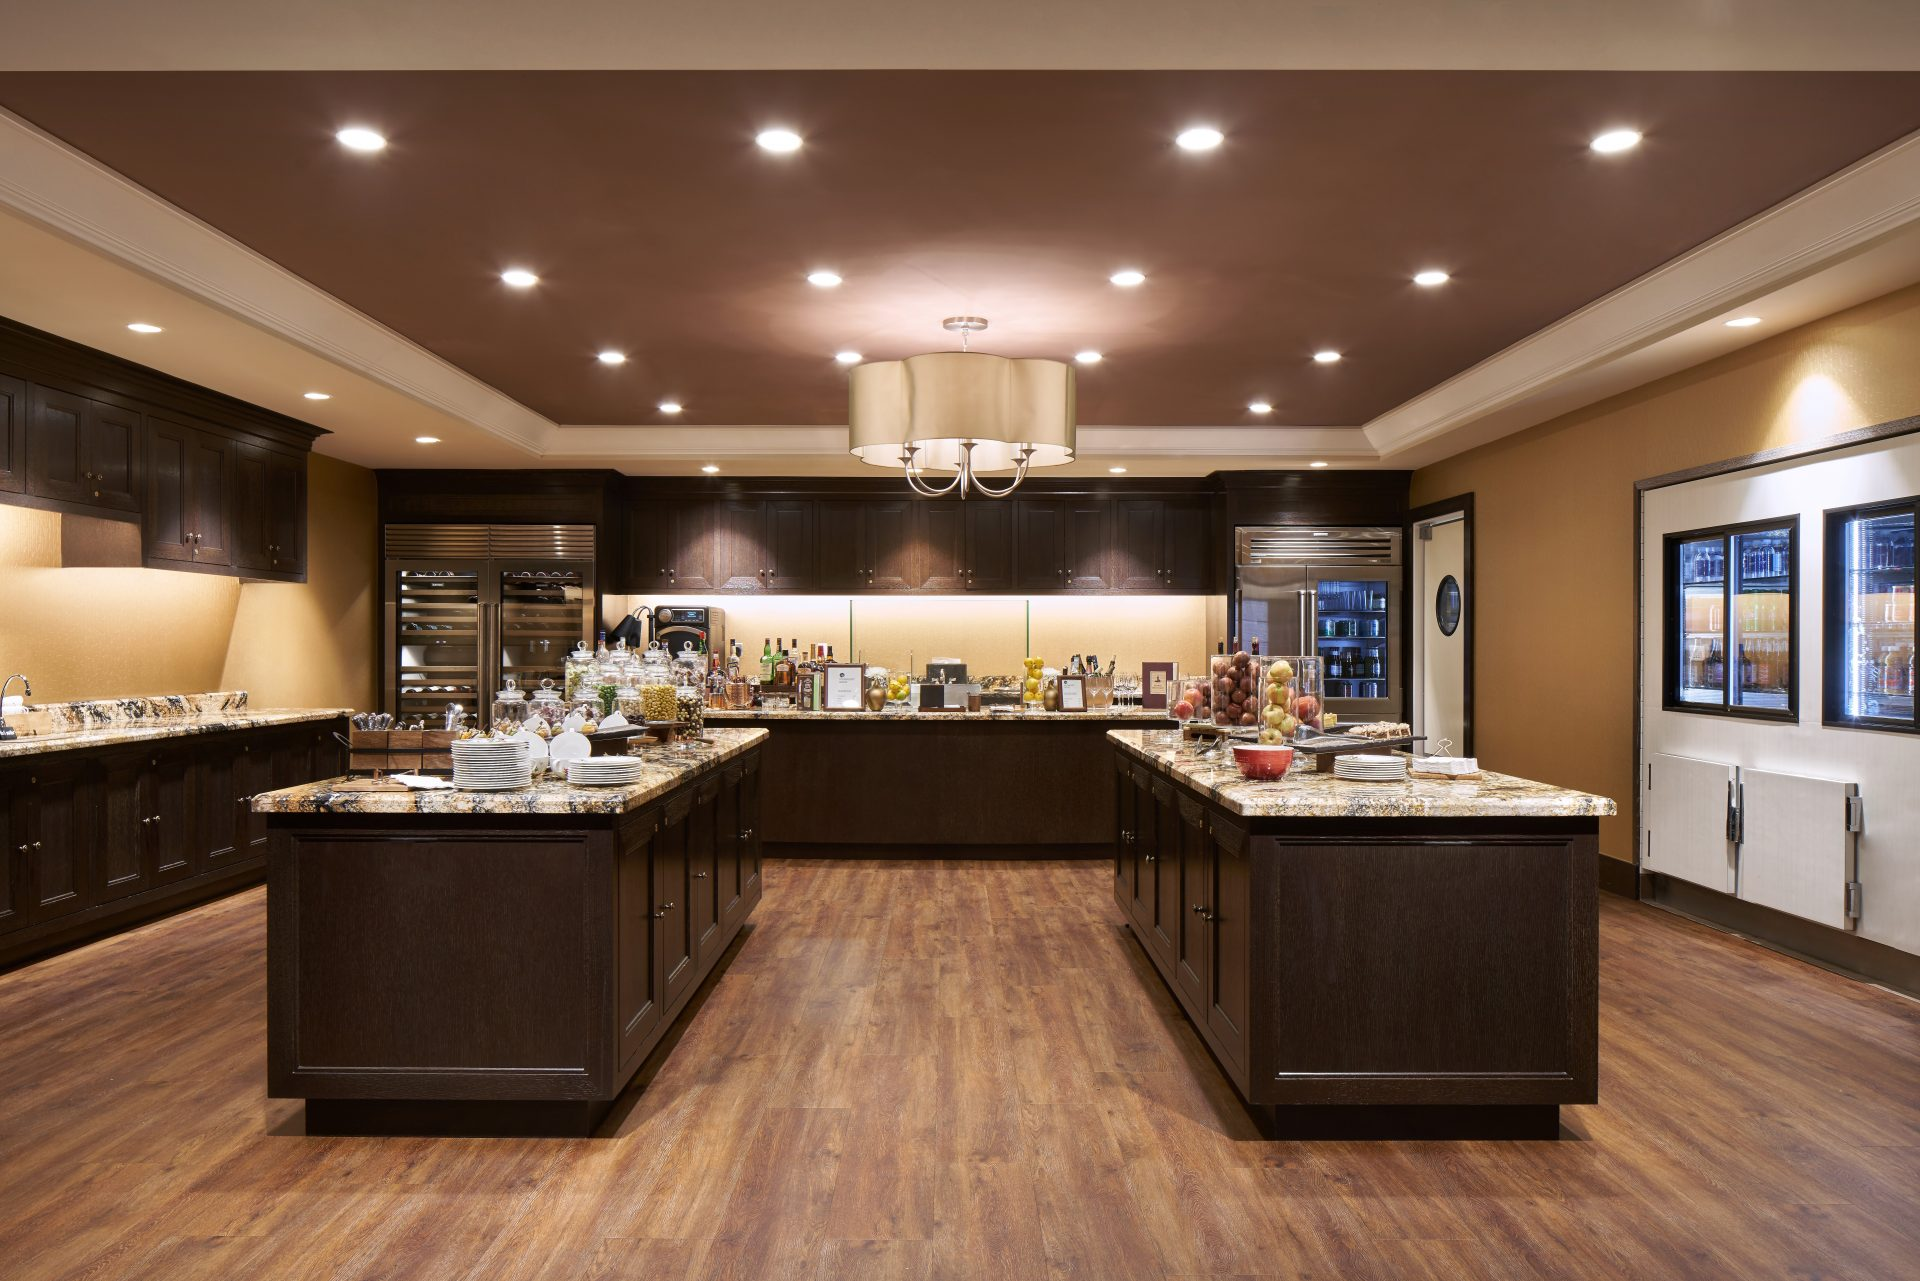 Wide view of elegant buffet style kitchen with 2 long marble topped island and wrap around marble counter with cabinets